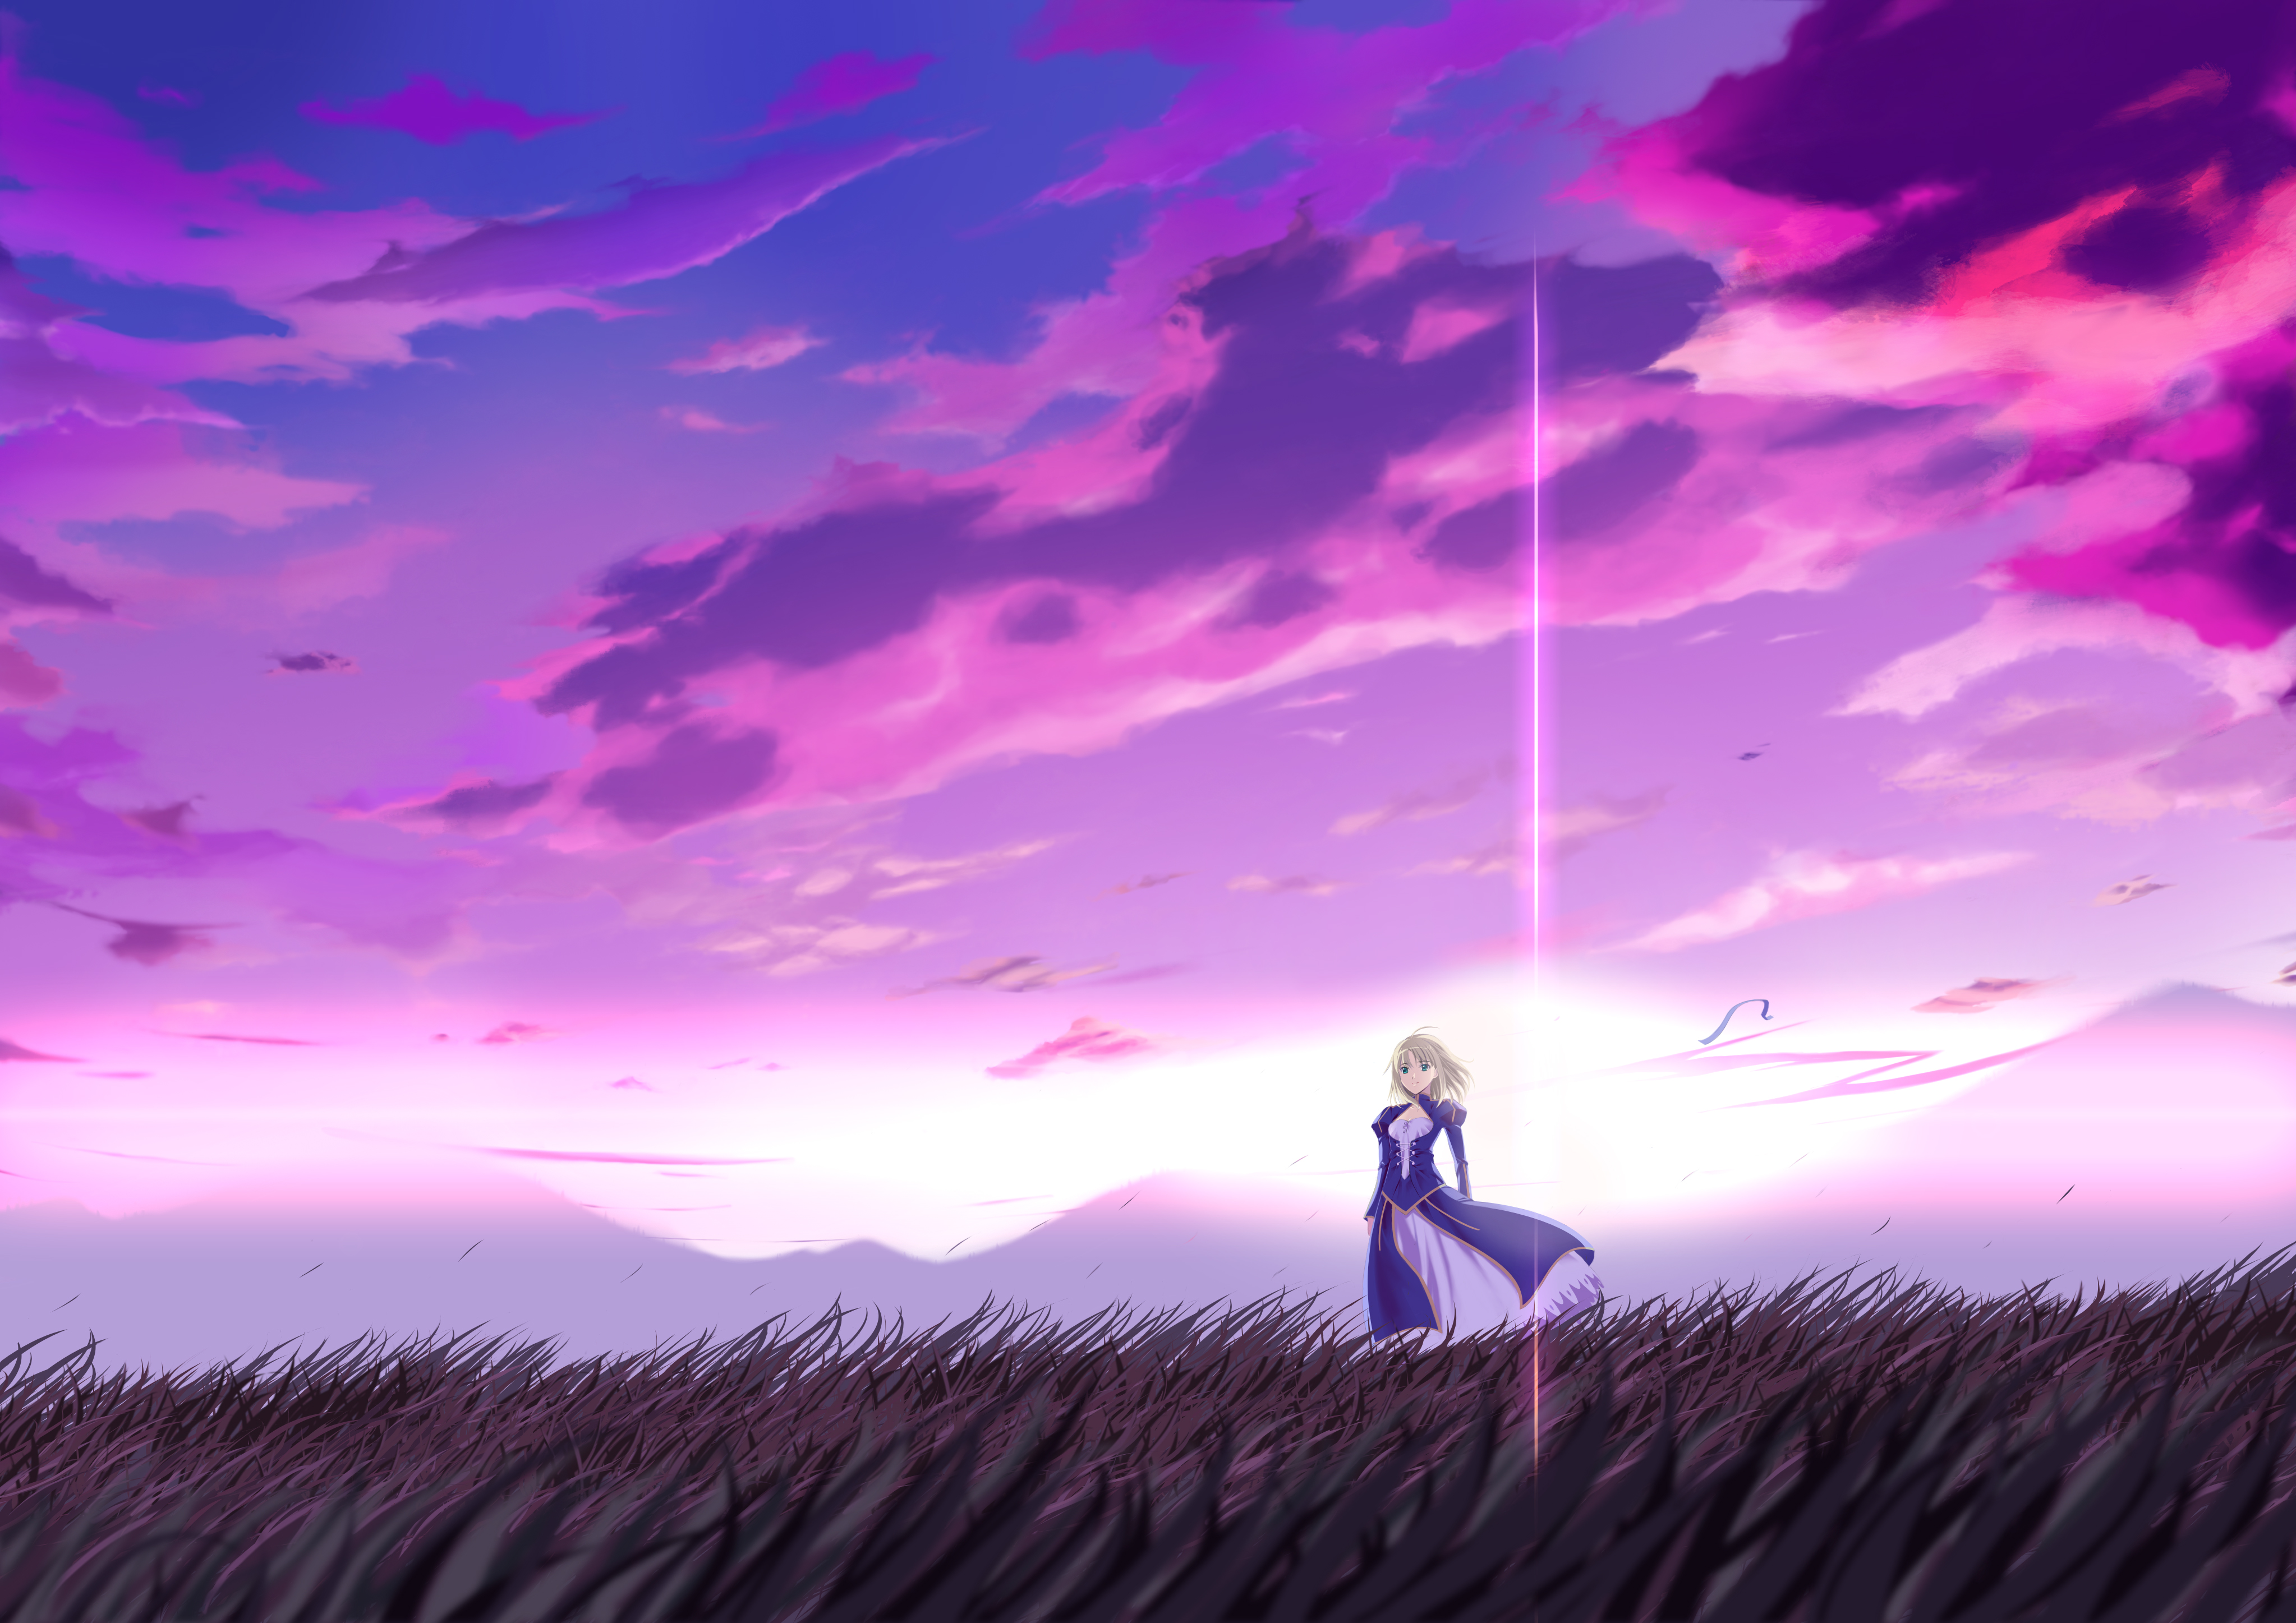 Anime Fate Stay Night 4k Hd Anime 4k Wallpapers Images